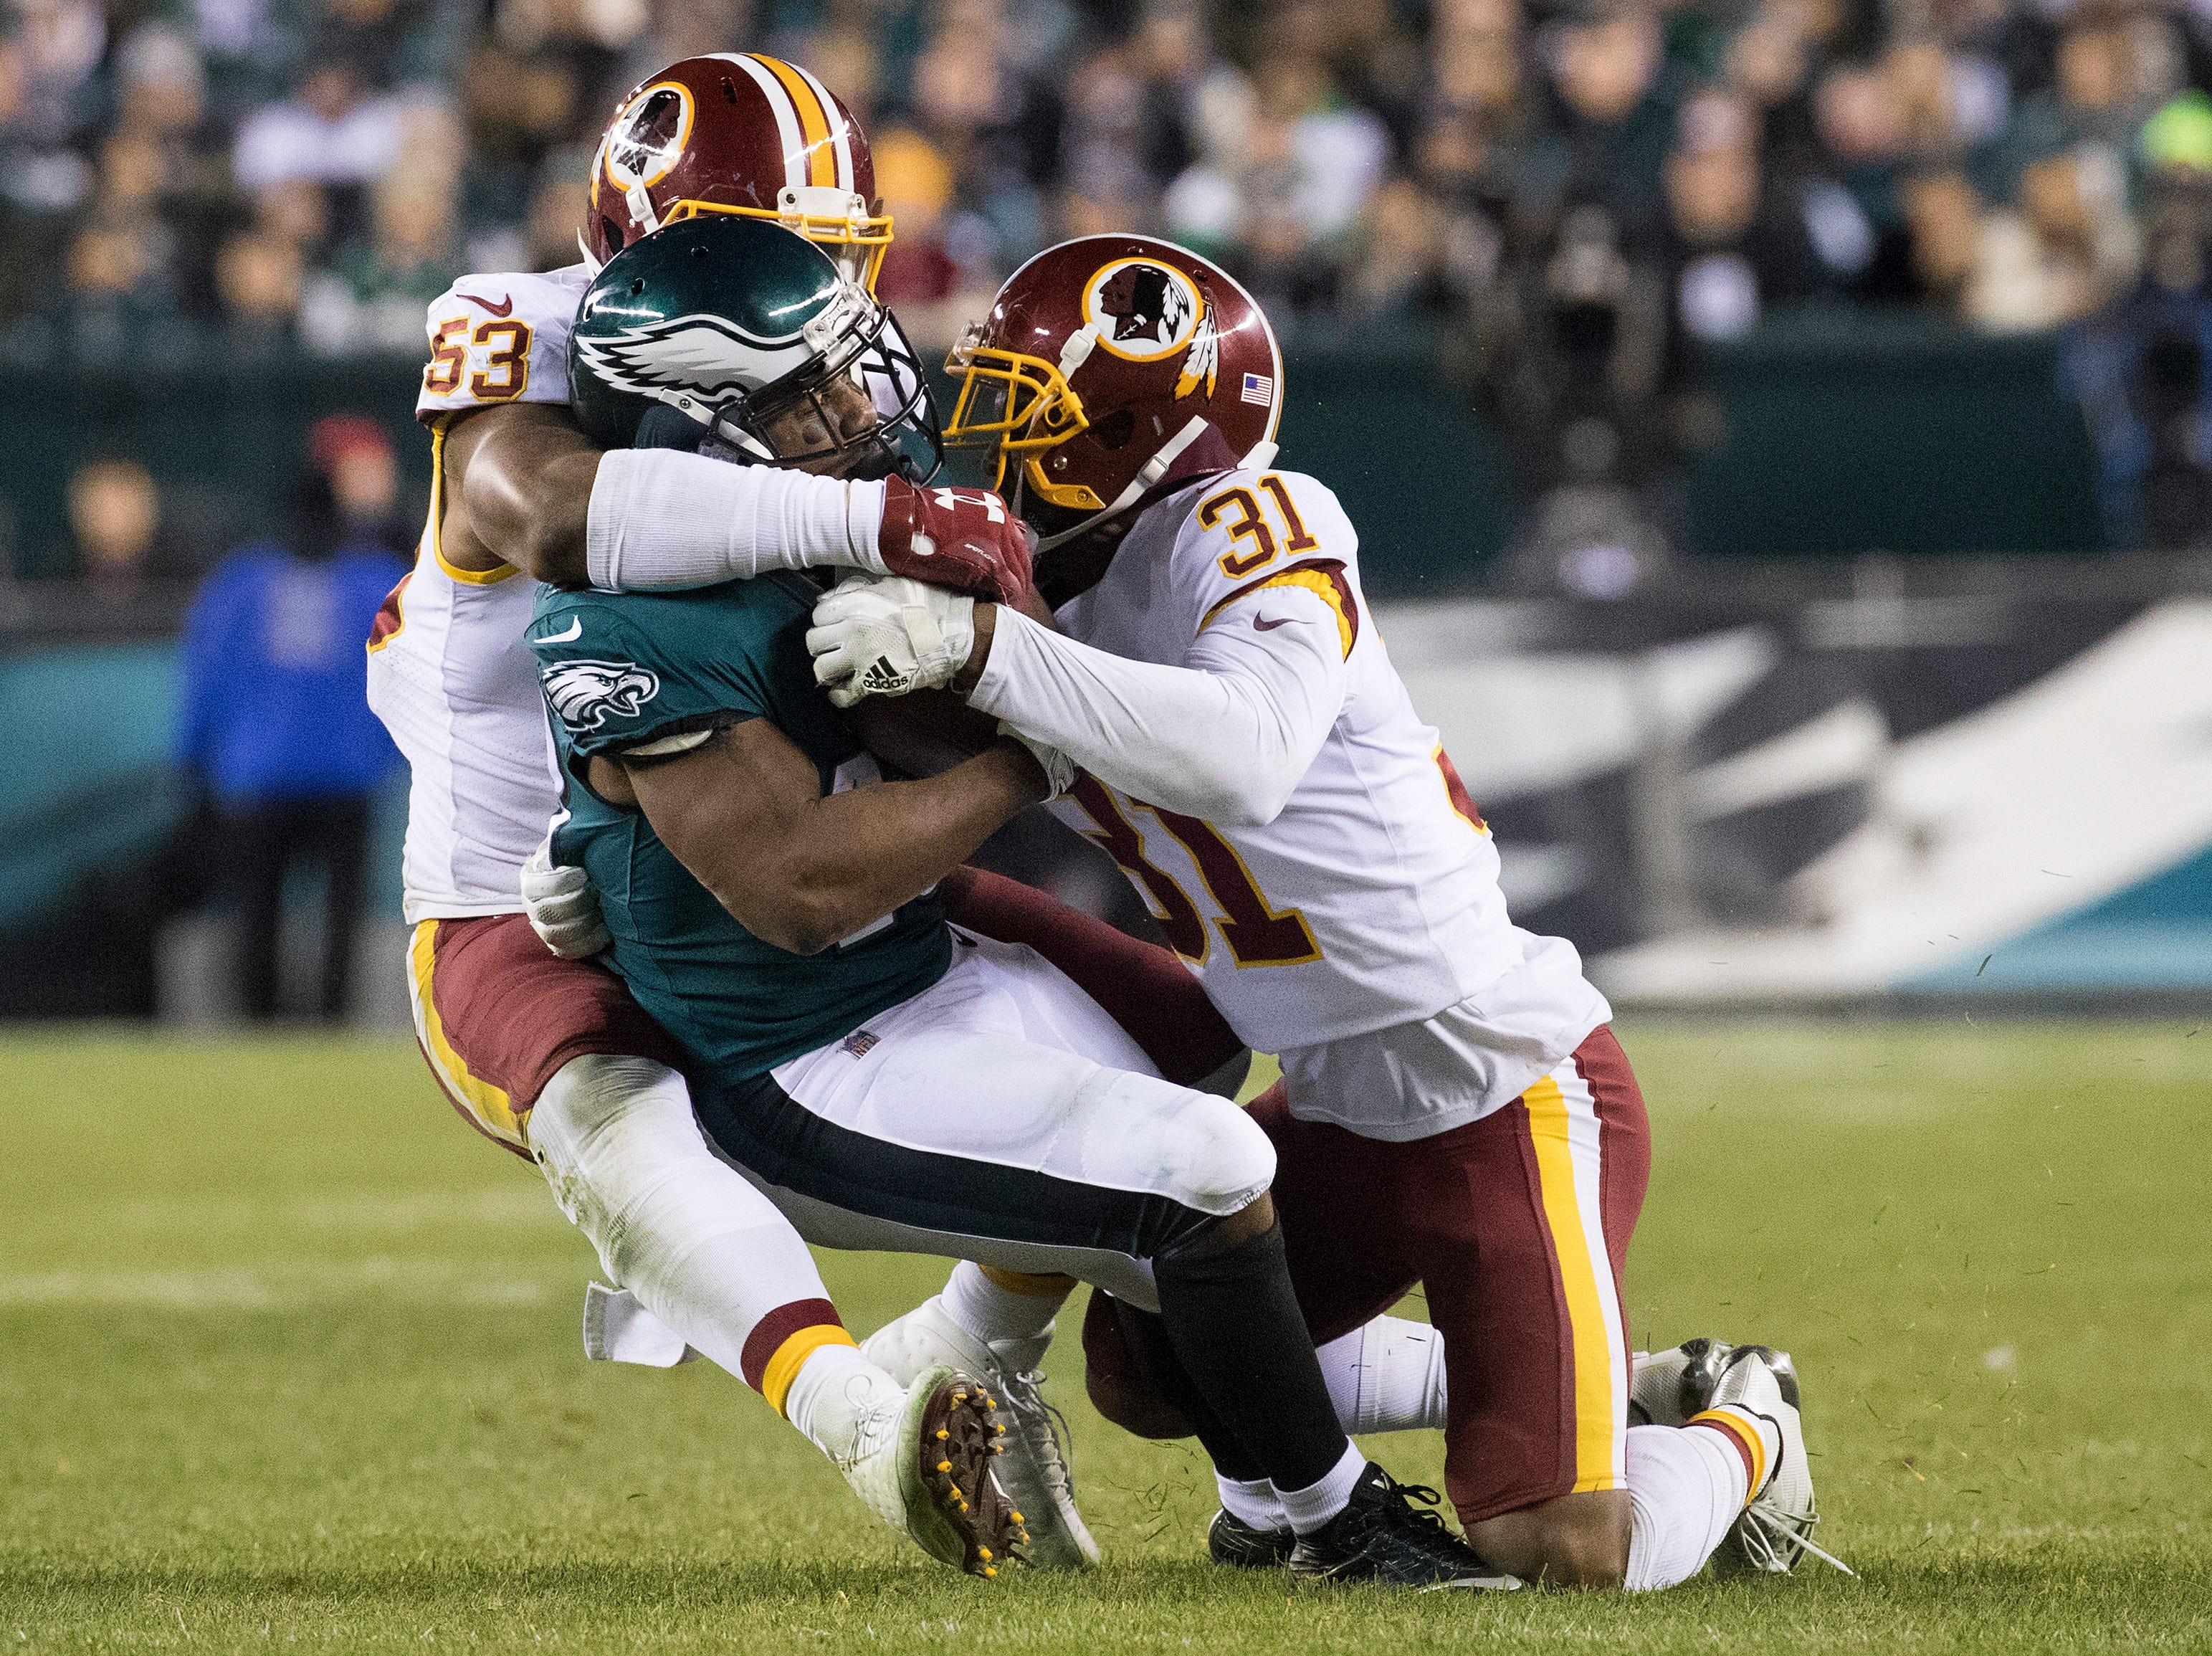 Washington's Fabian Moreau (31) and Zach Brown (53) wrap up the Eagles' Darren Sproles (43) Monday night.